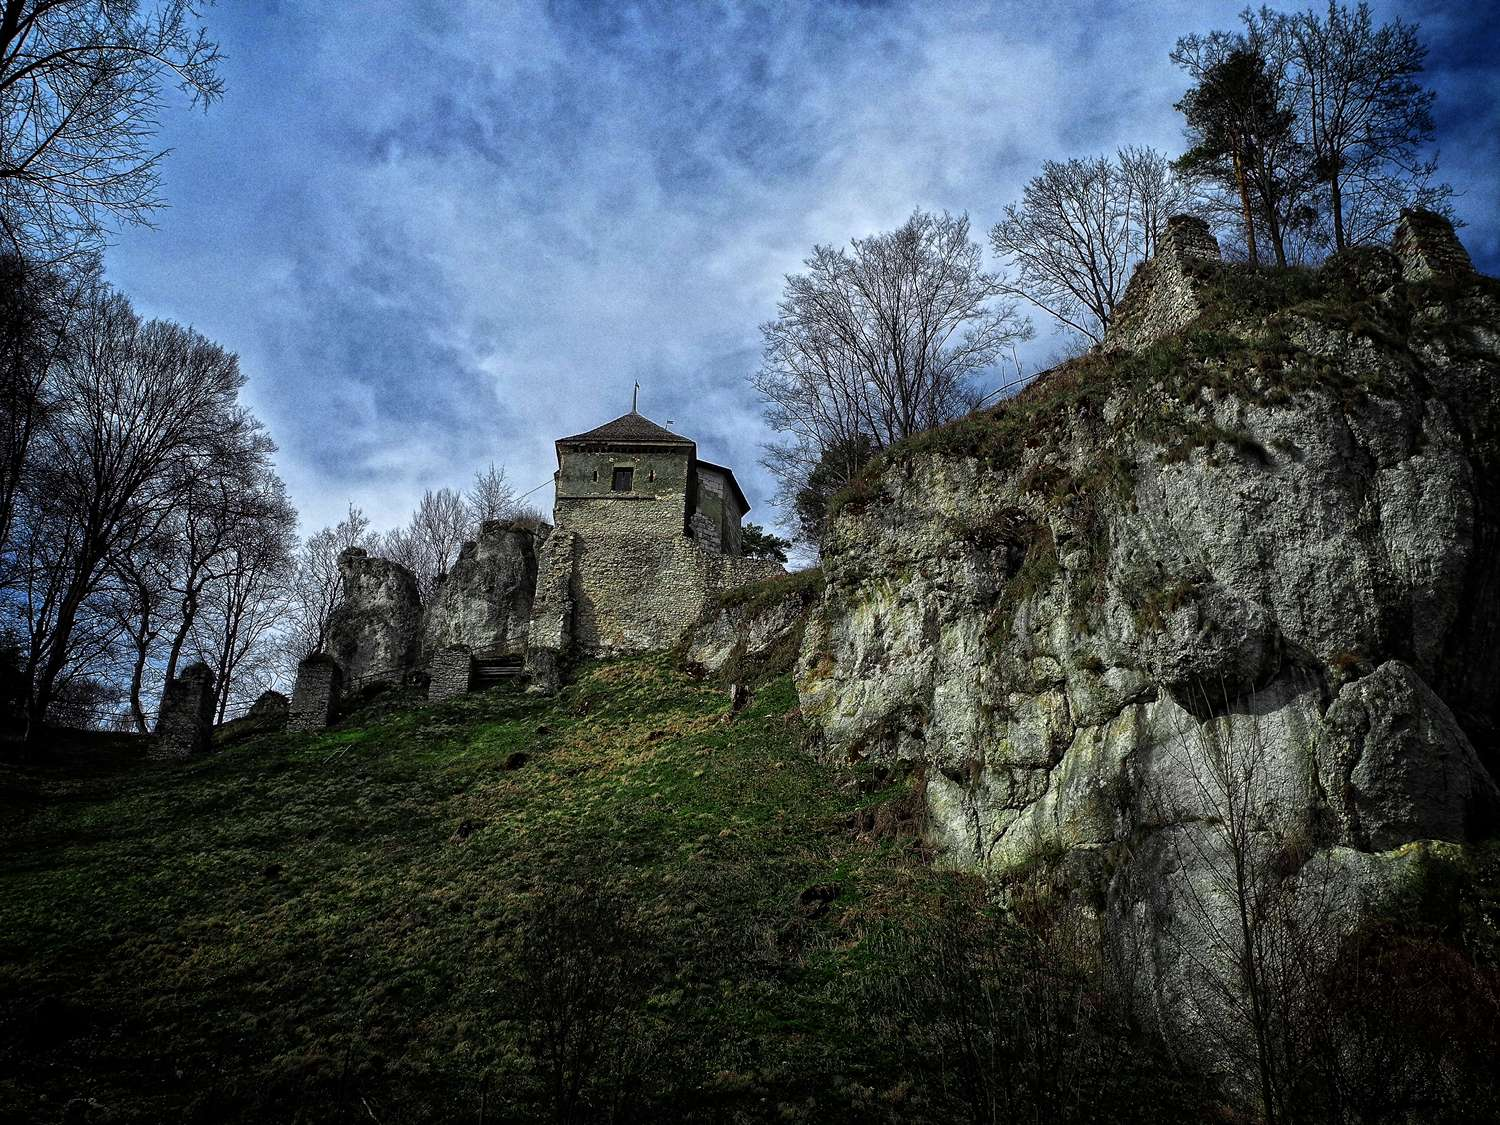 witcher locations castles in poland